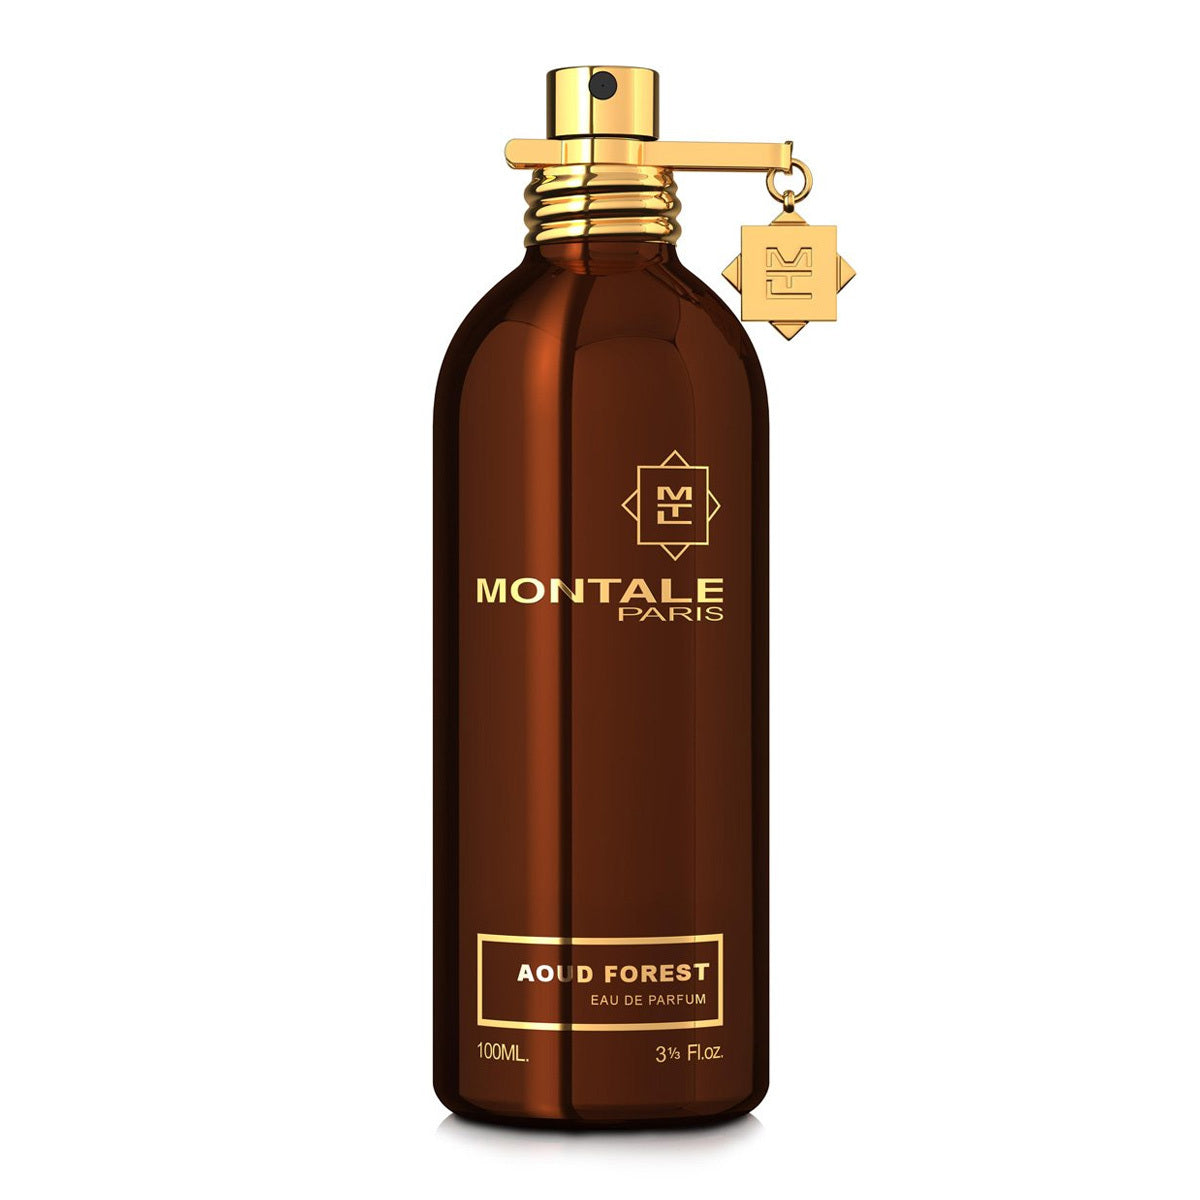 Niche Fragrance for Summer | Montale Paris Aoud Forest Eau de Parfum